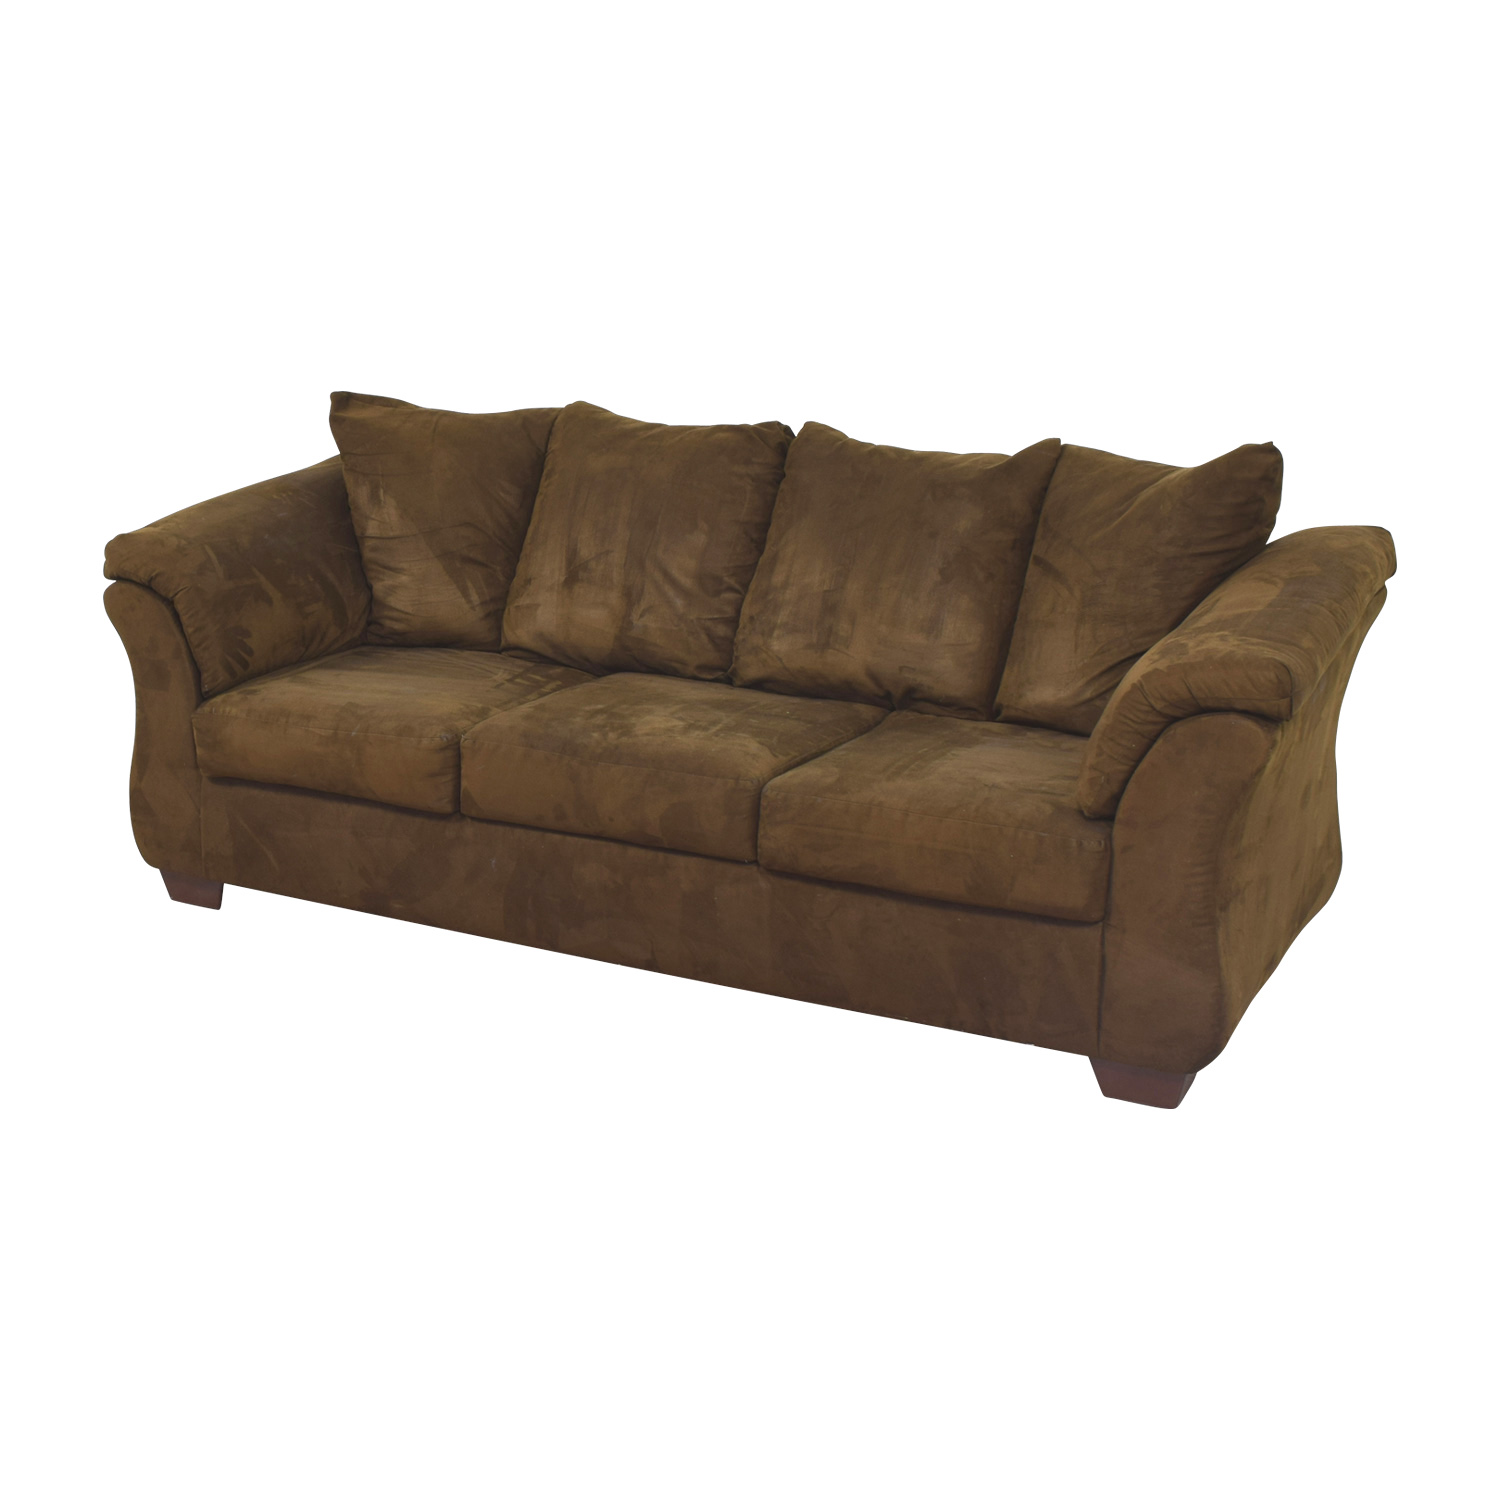 Ashley Furniture Ashley Furniture Three-Cushion Brown Couch second hand